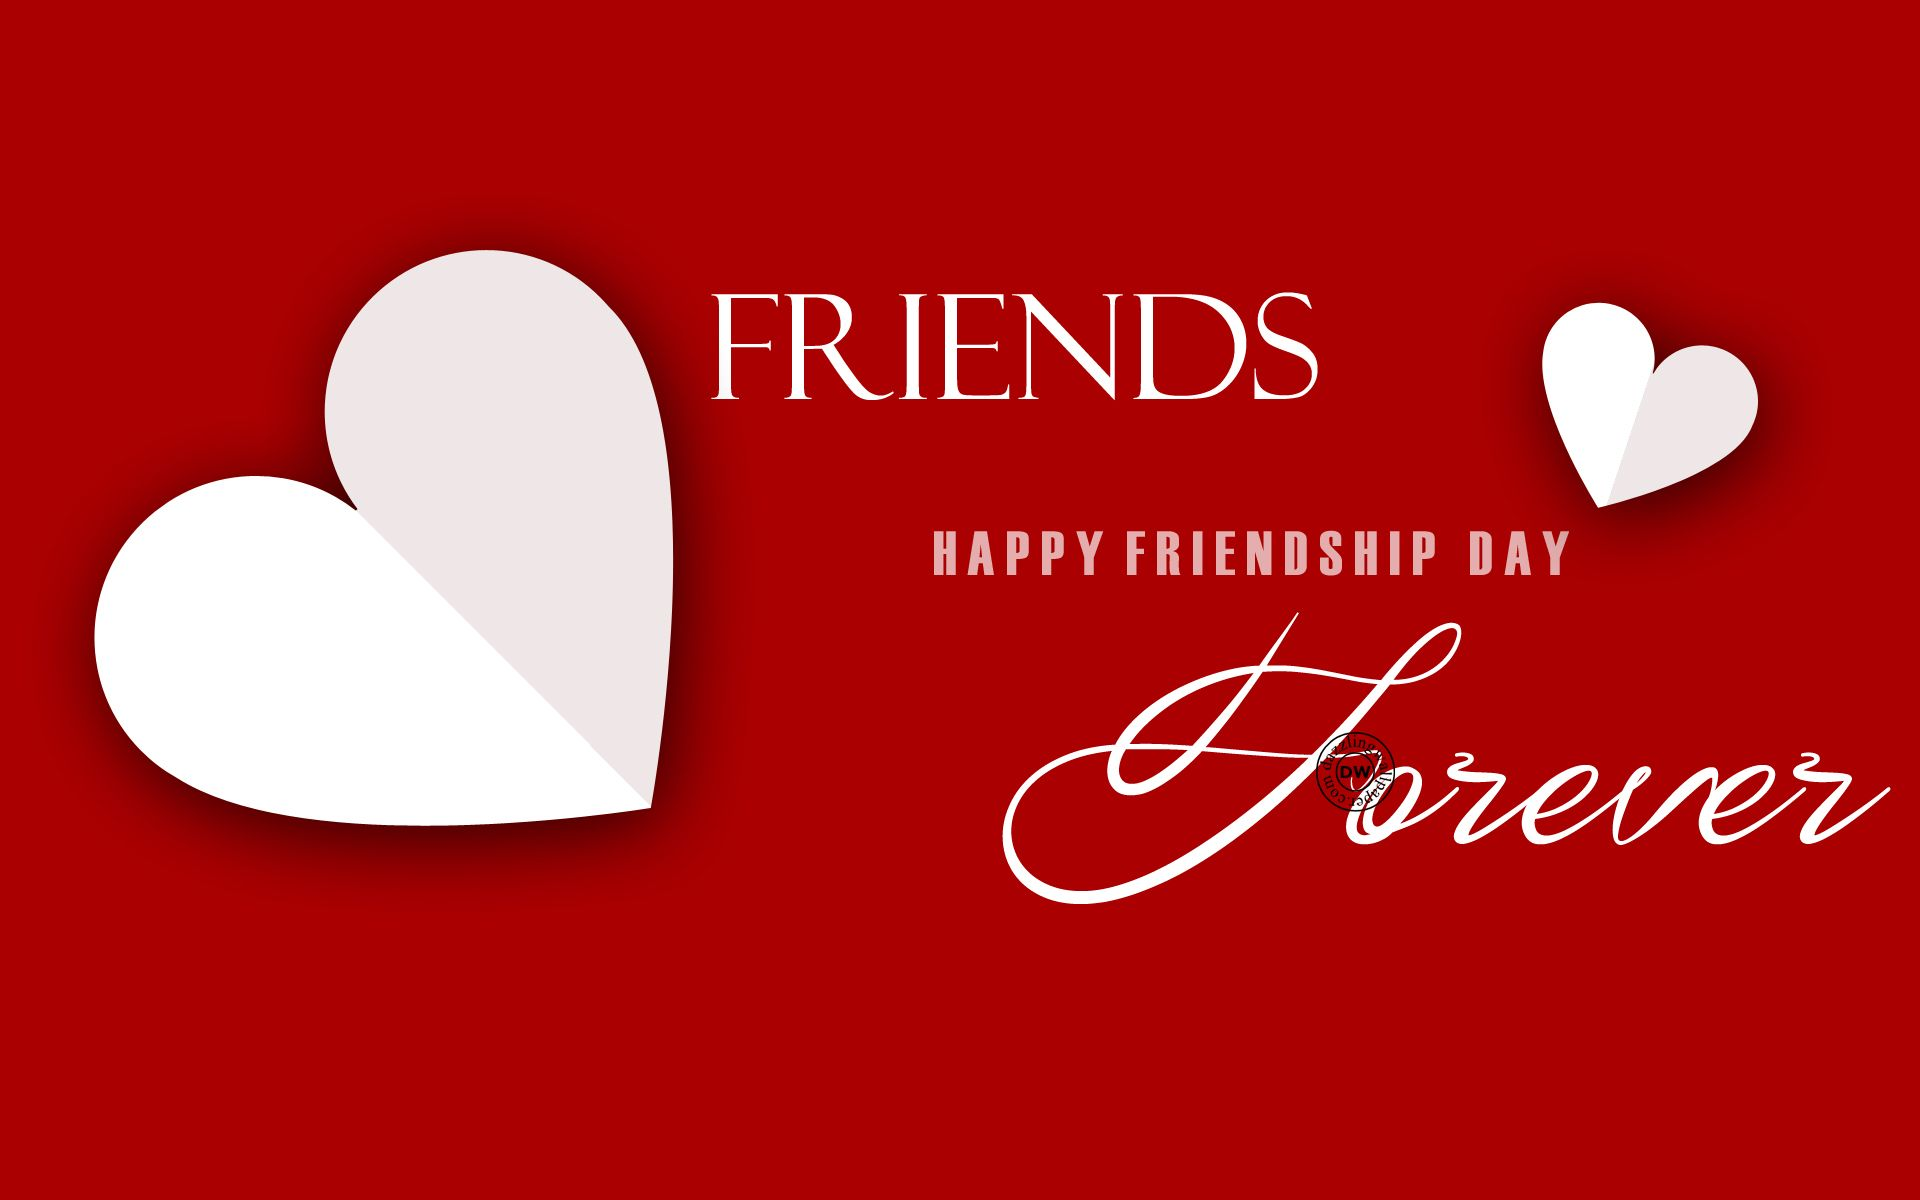 Friendship Day Cute Wallpaper Happy Friendship Day Friends Best